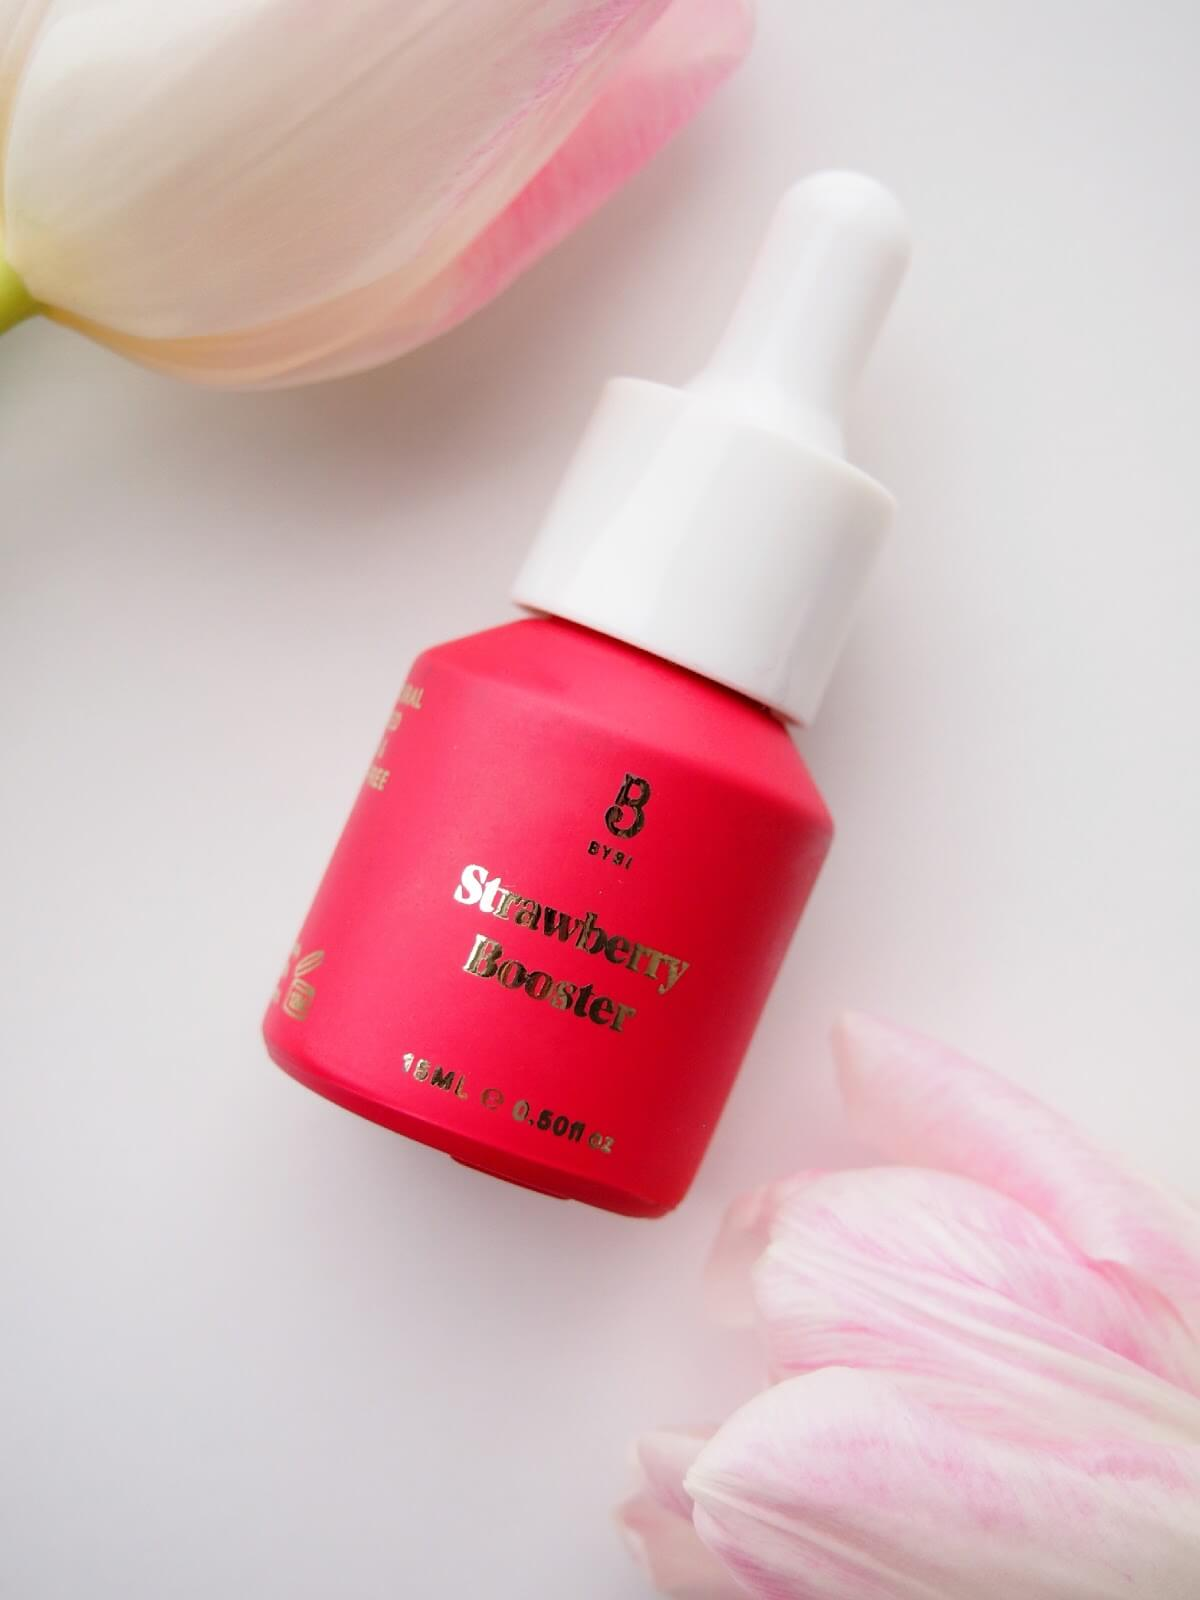 BYBI Sttrawberry Booster